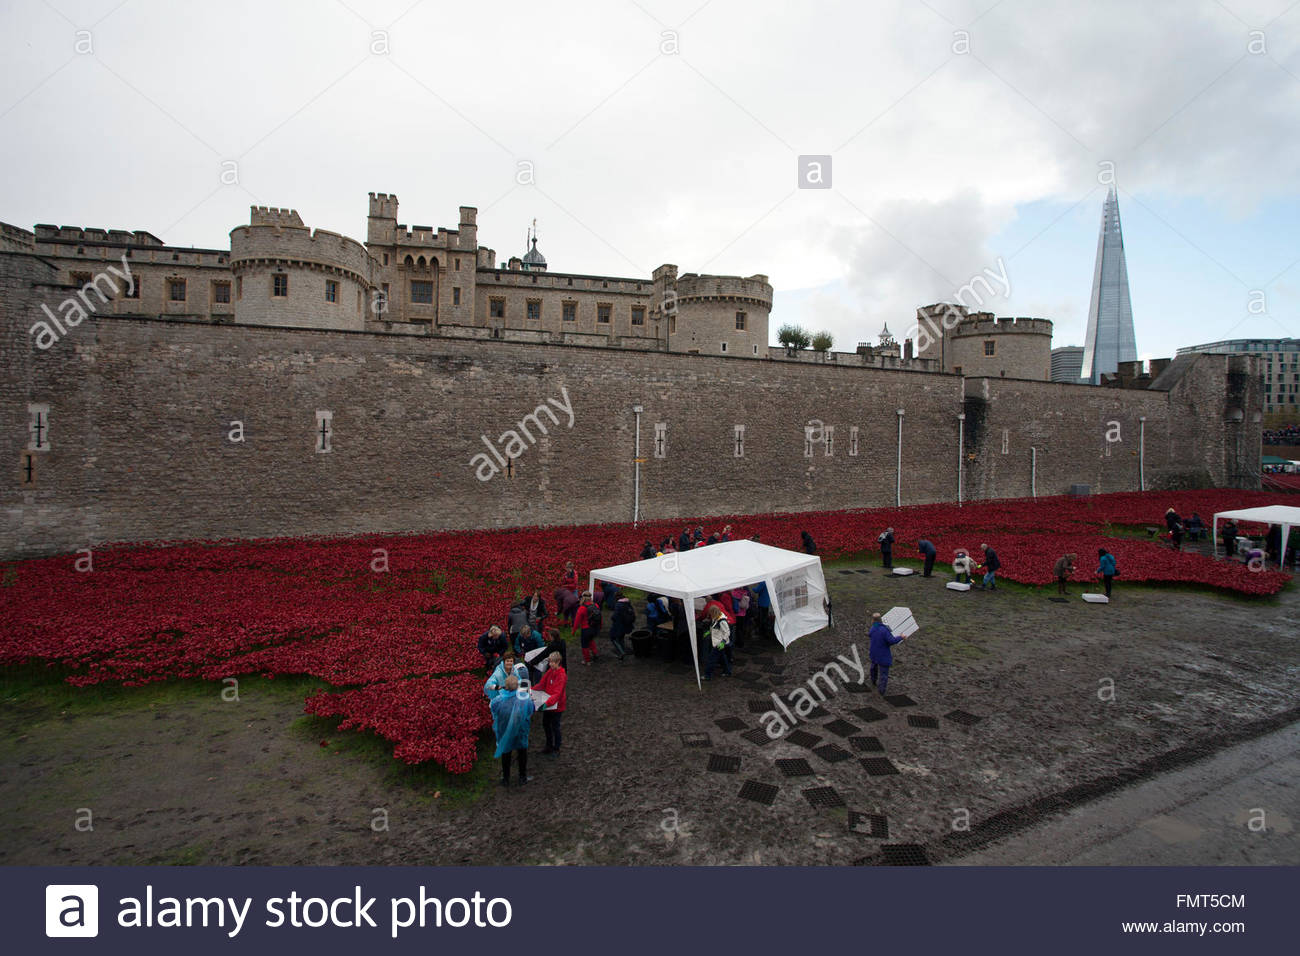 Some of 8.000 volunteers dismantling the Blood Swept Lands and Seas of Red exhibit, Tower of London, The Shard, Stock Photo